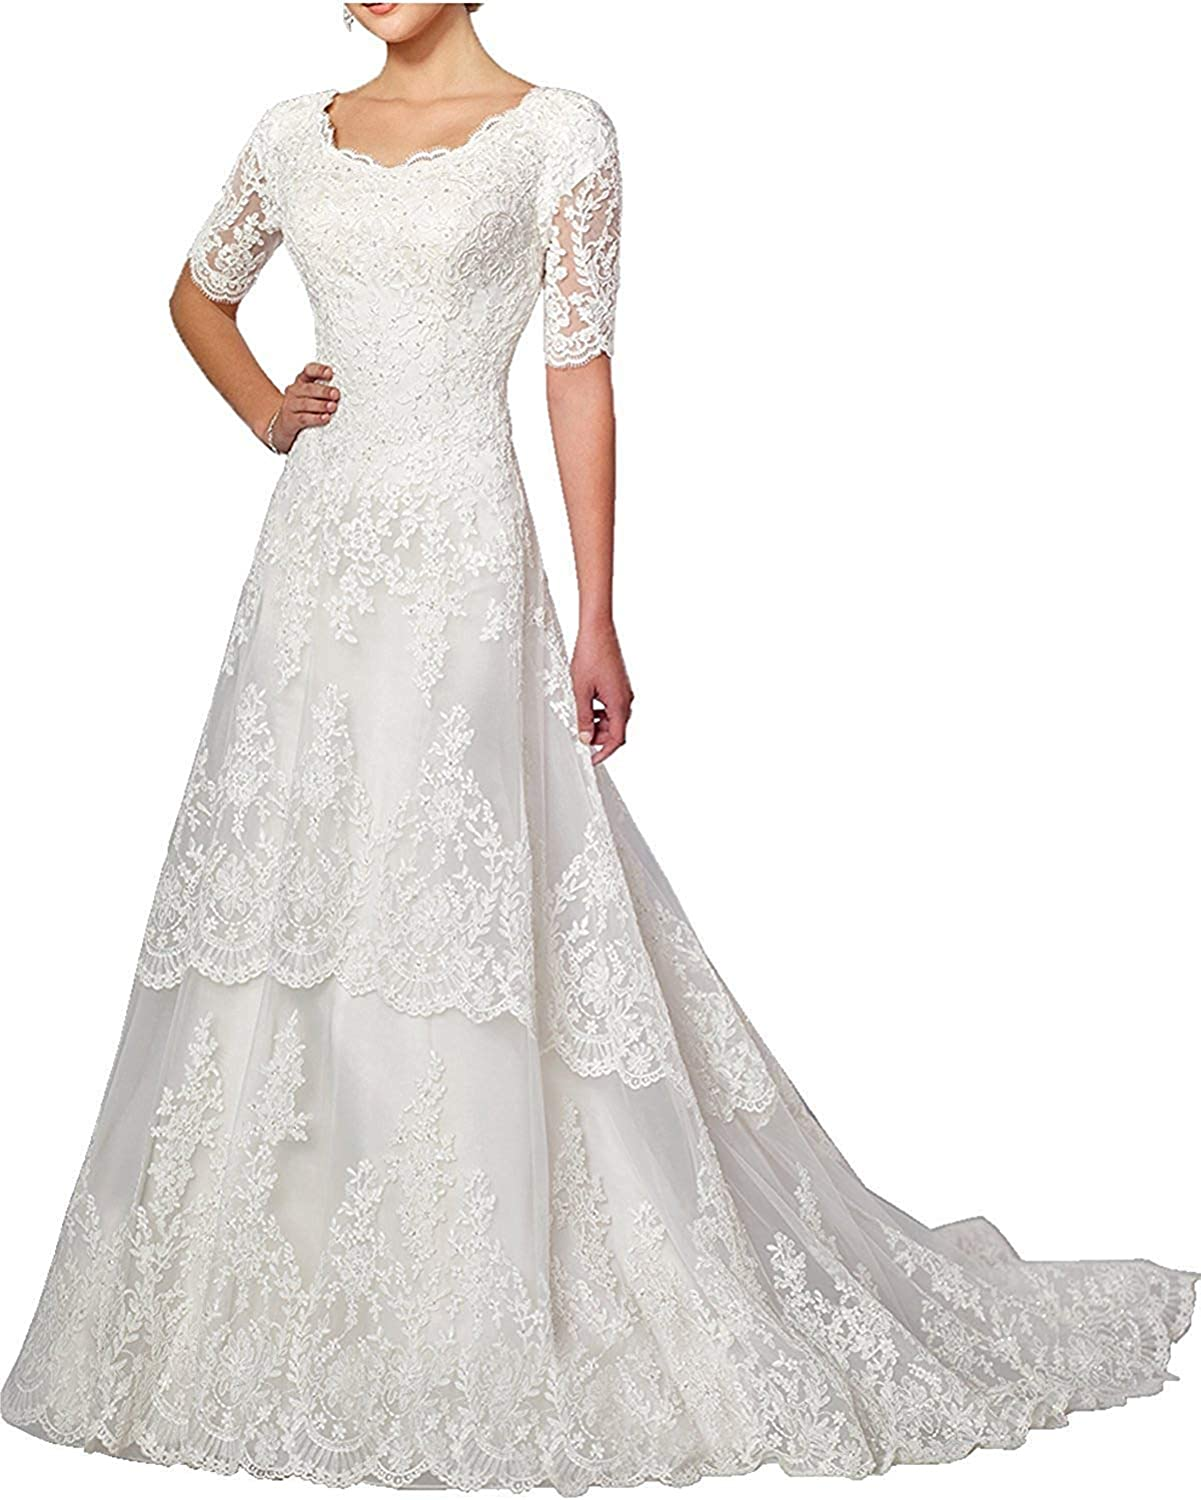 Wedding Dress Lace Bride Dresses with Sleeves Wedding Gown A line Bridal Gown with Train